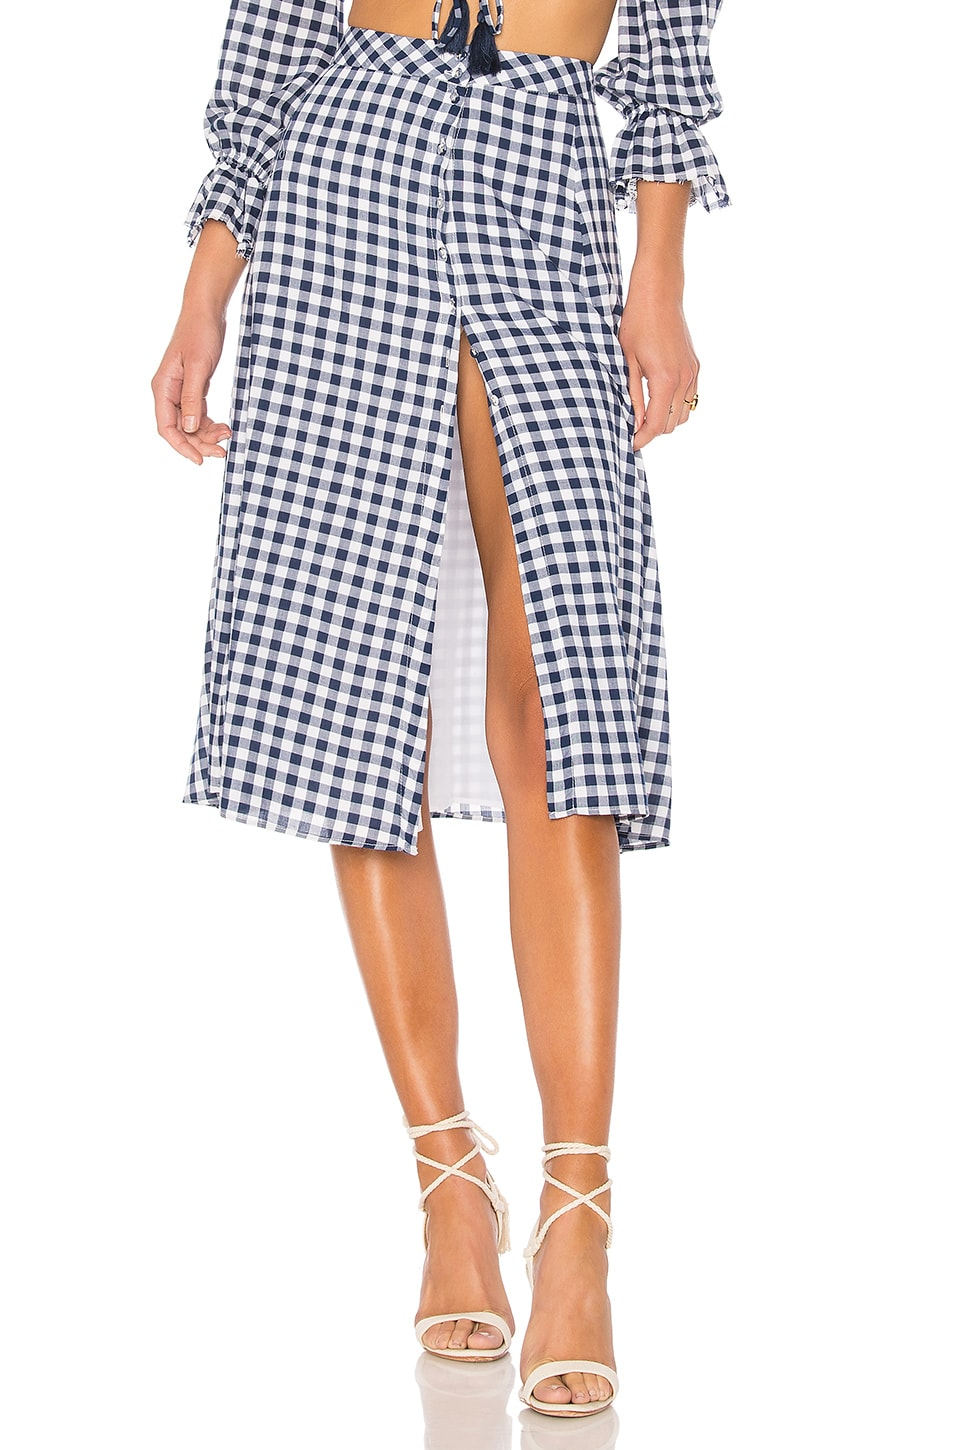 MAJORELLE x REVOLVE Emery Skirt in Oxford